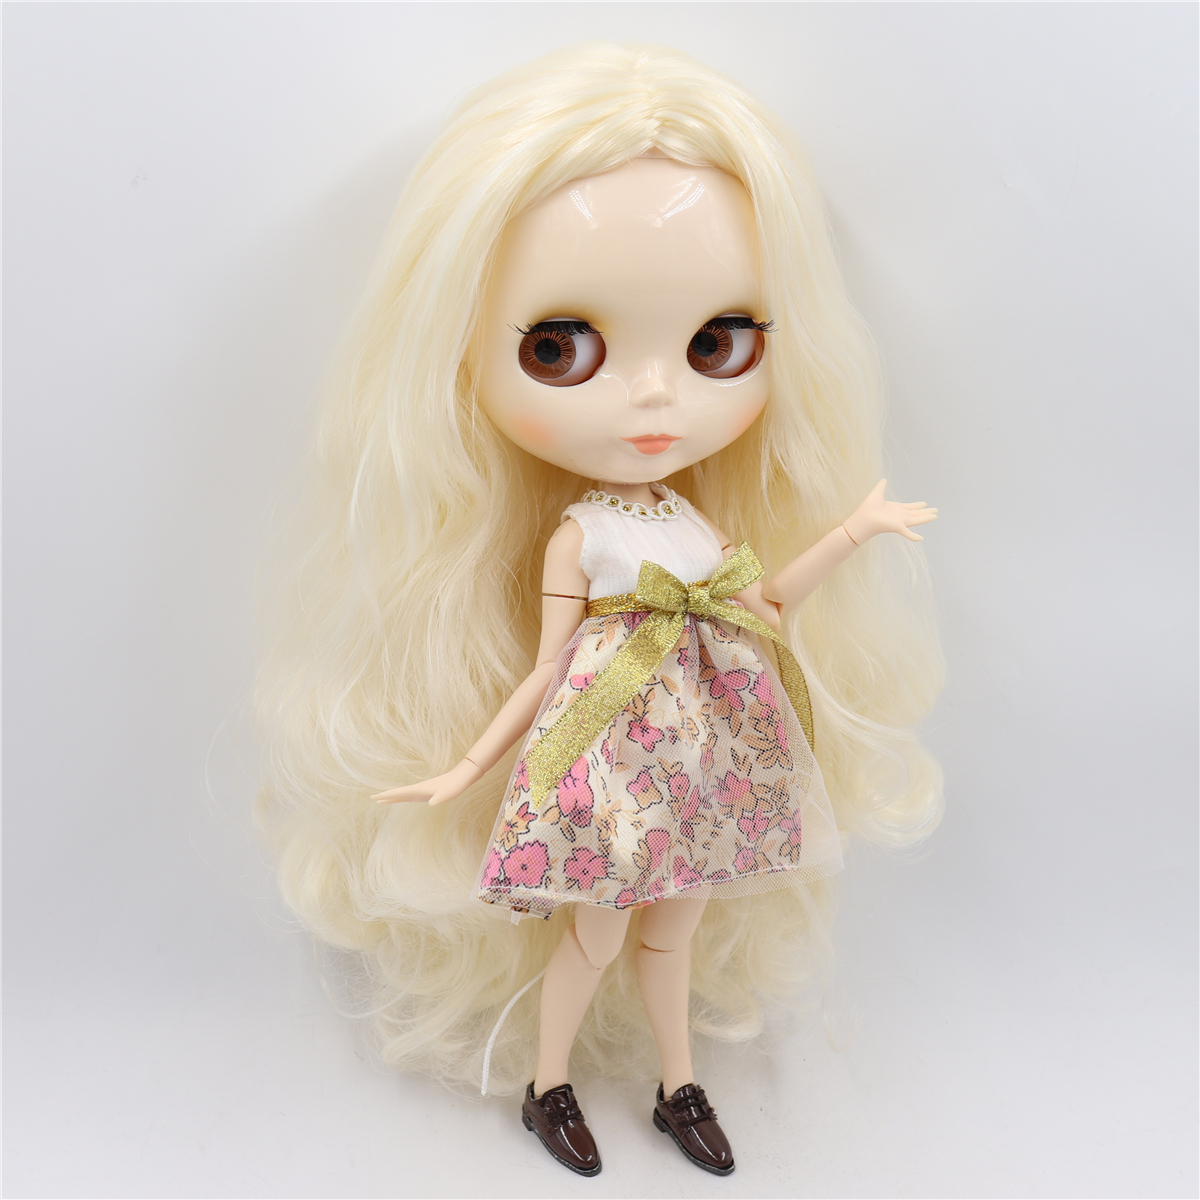 Image 5 - ICY factory blyth doll bjd toy joint body white skin shiny face doll 1/6 30cm girl gift on sale special offerDolls   -